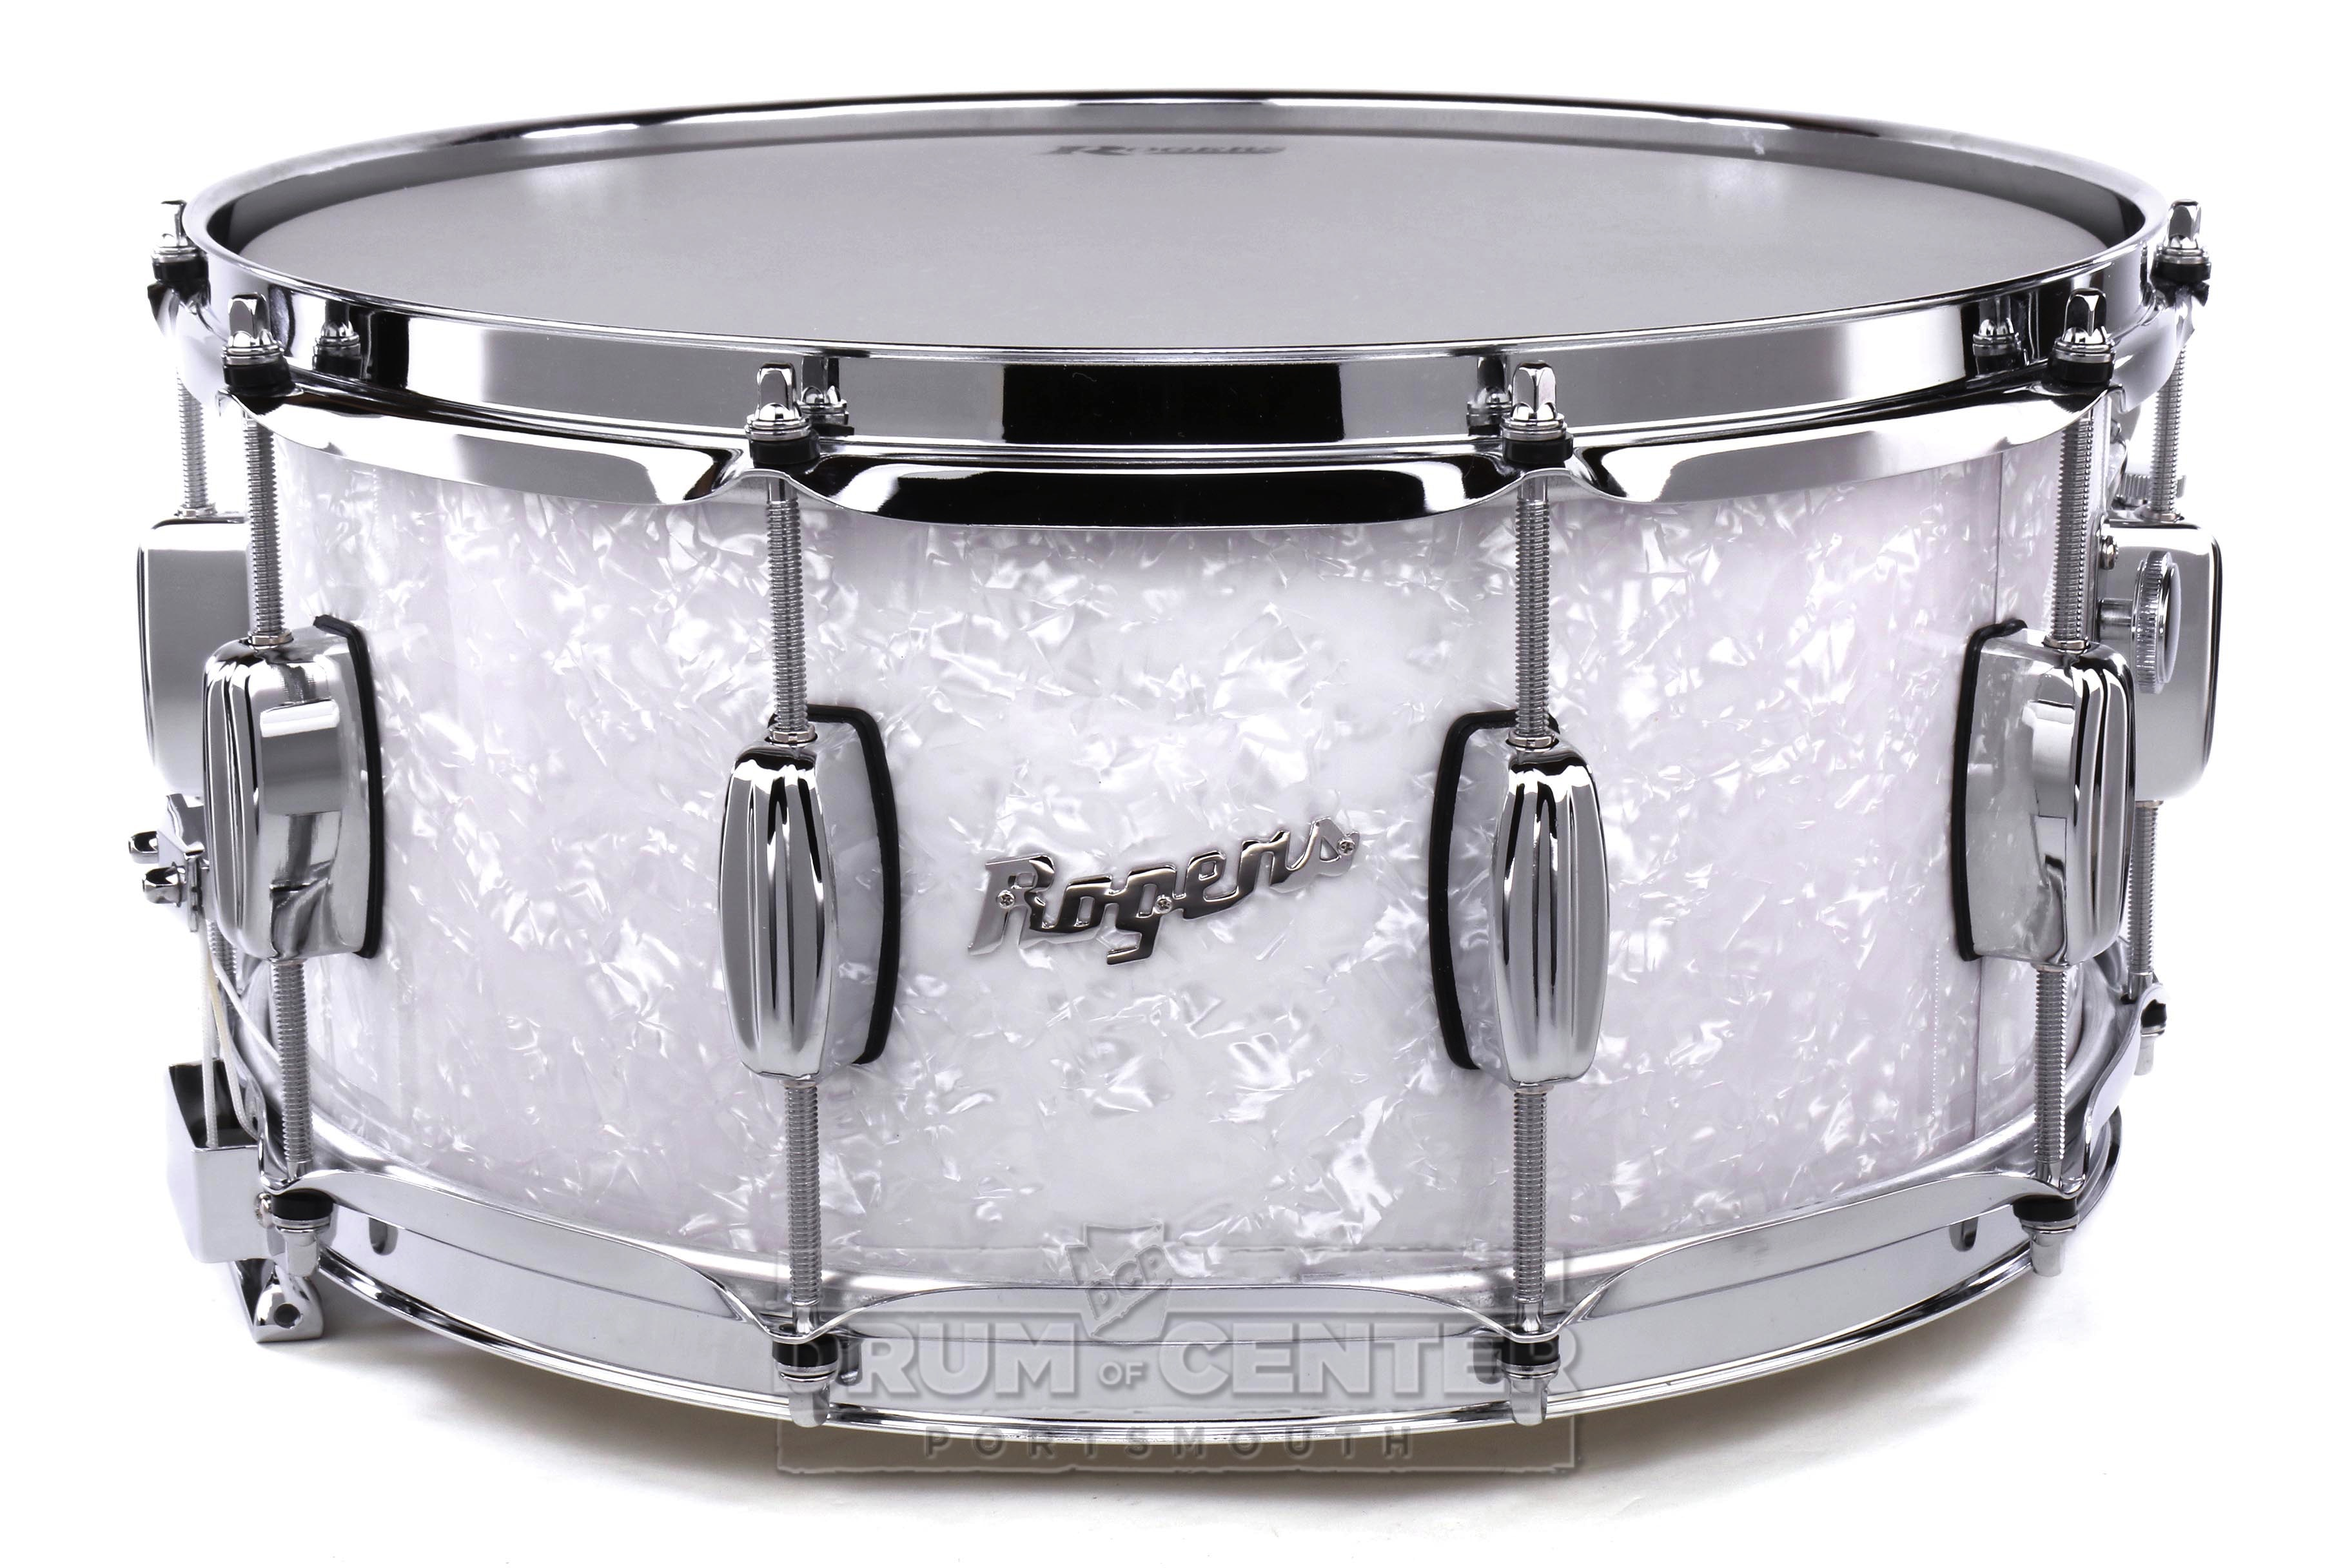 rogers dyna sonic wood shell snare drum 14x6 5 white marine pearl 471898102662 ebay. Black Bedroom Furniture Sets. Home Design Ideas